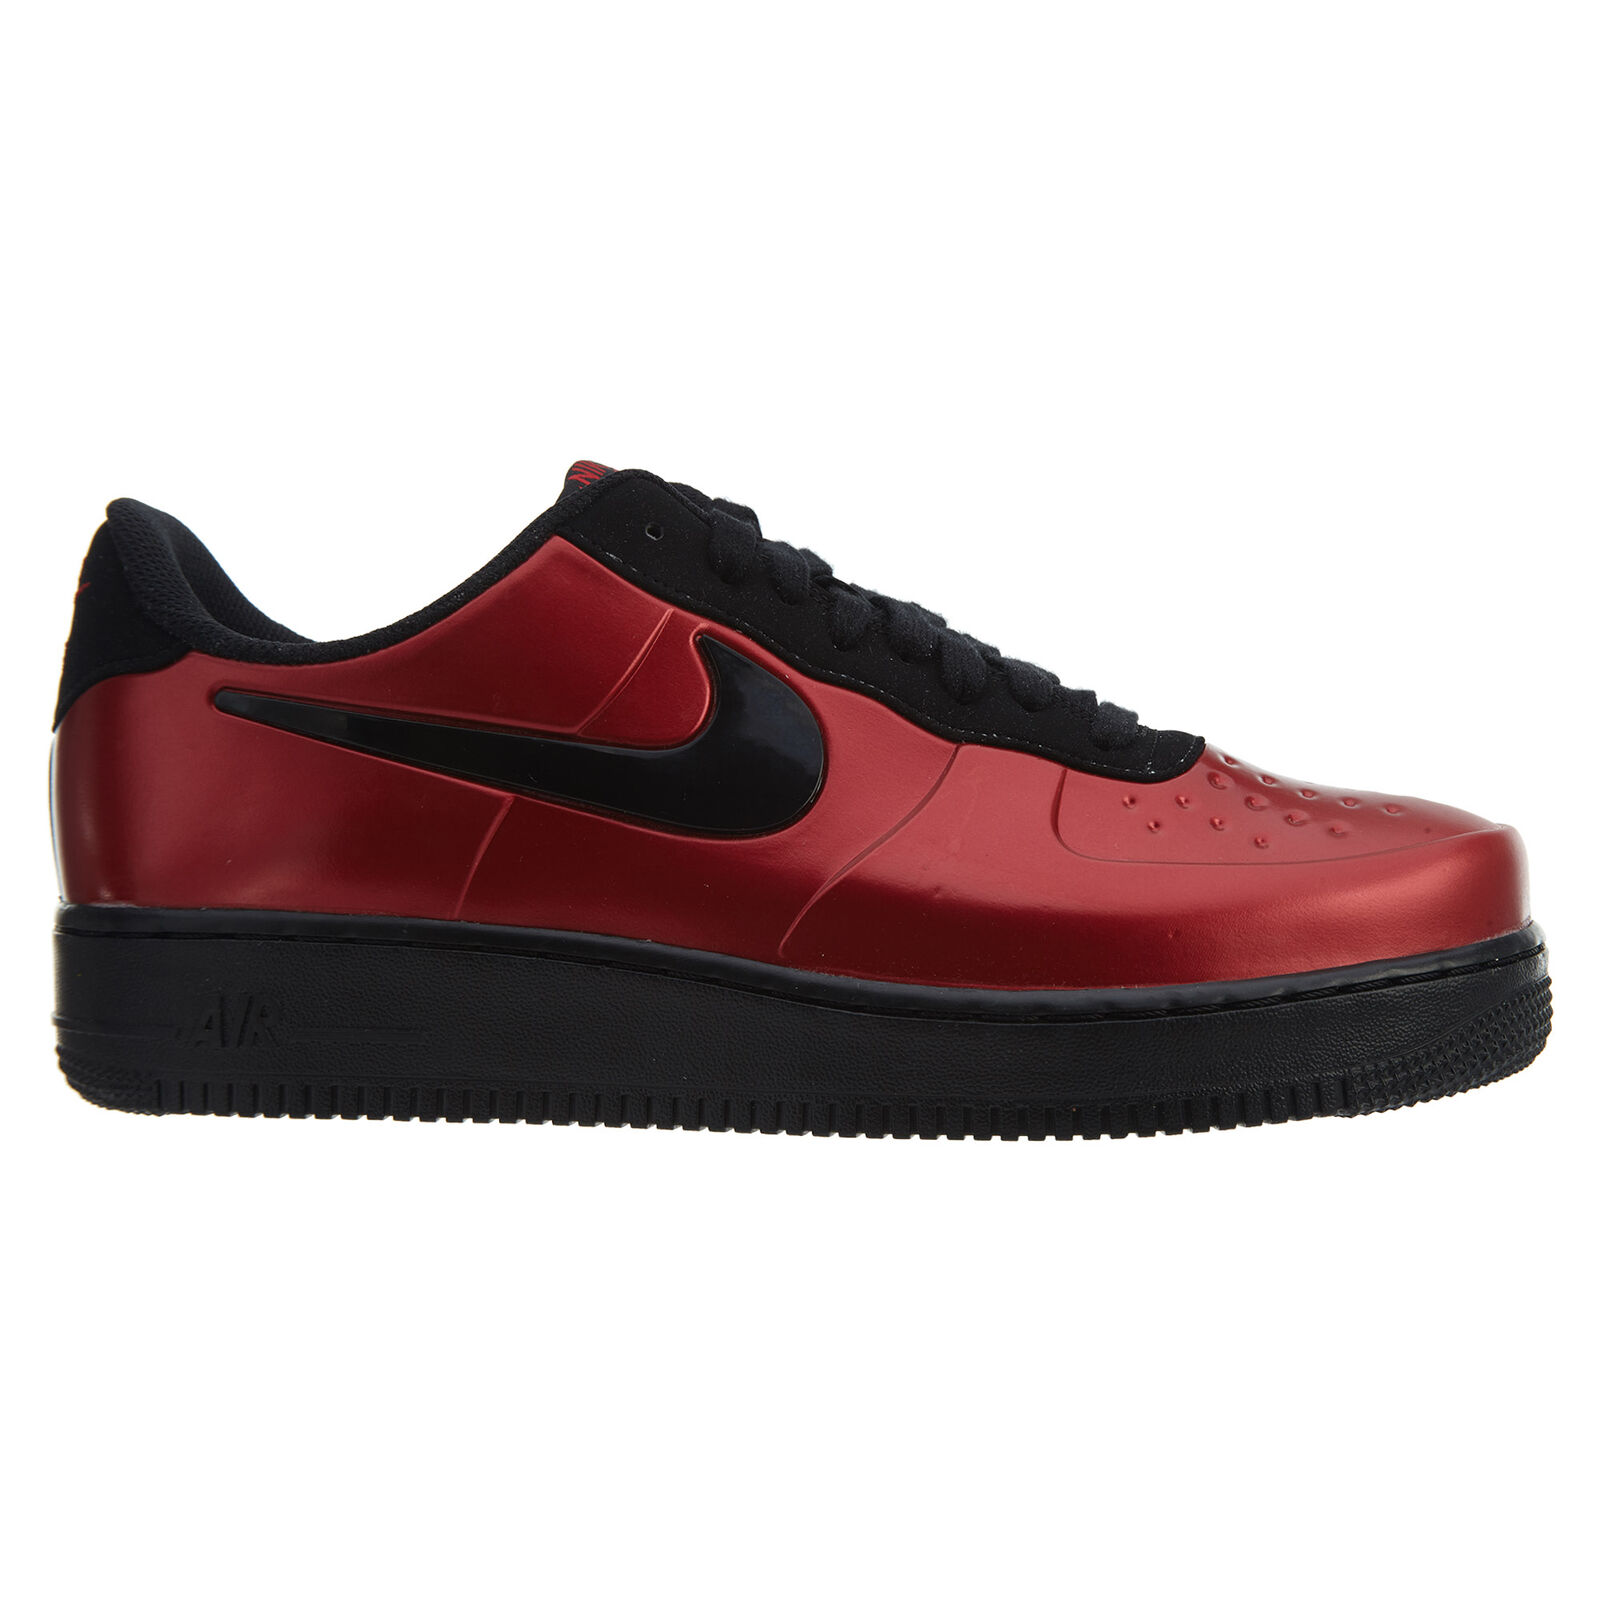 Nike Pro Air Force 1 Foamposite Pro Nike Cup Mens AJ3664-601 Gym Red Black Shoes Sz 10.5 c86753